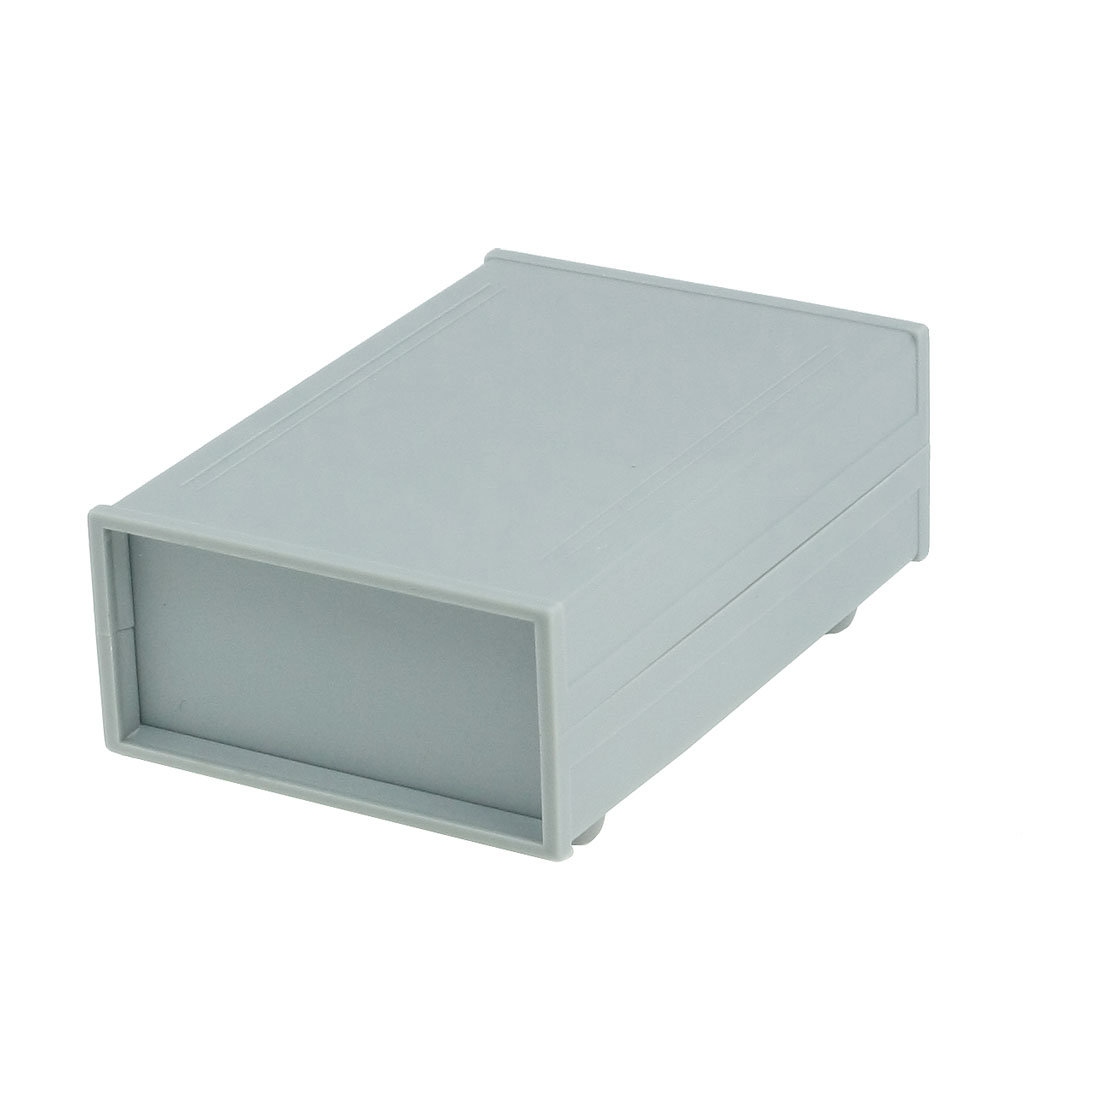 118mm x 80mm x 40mm Plastic Enclosure Case DIY Junction Box